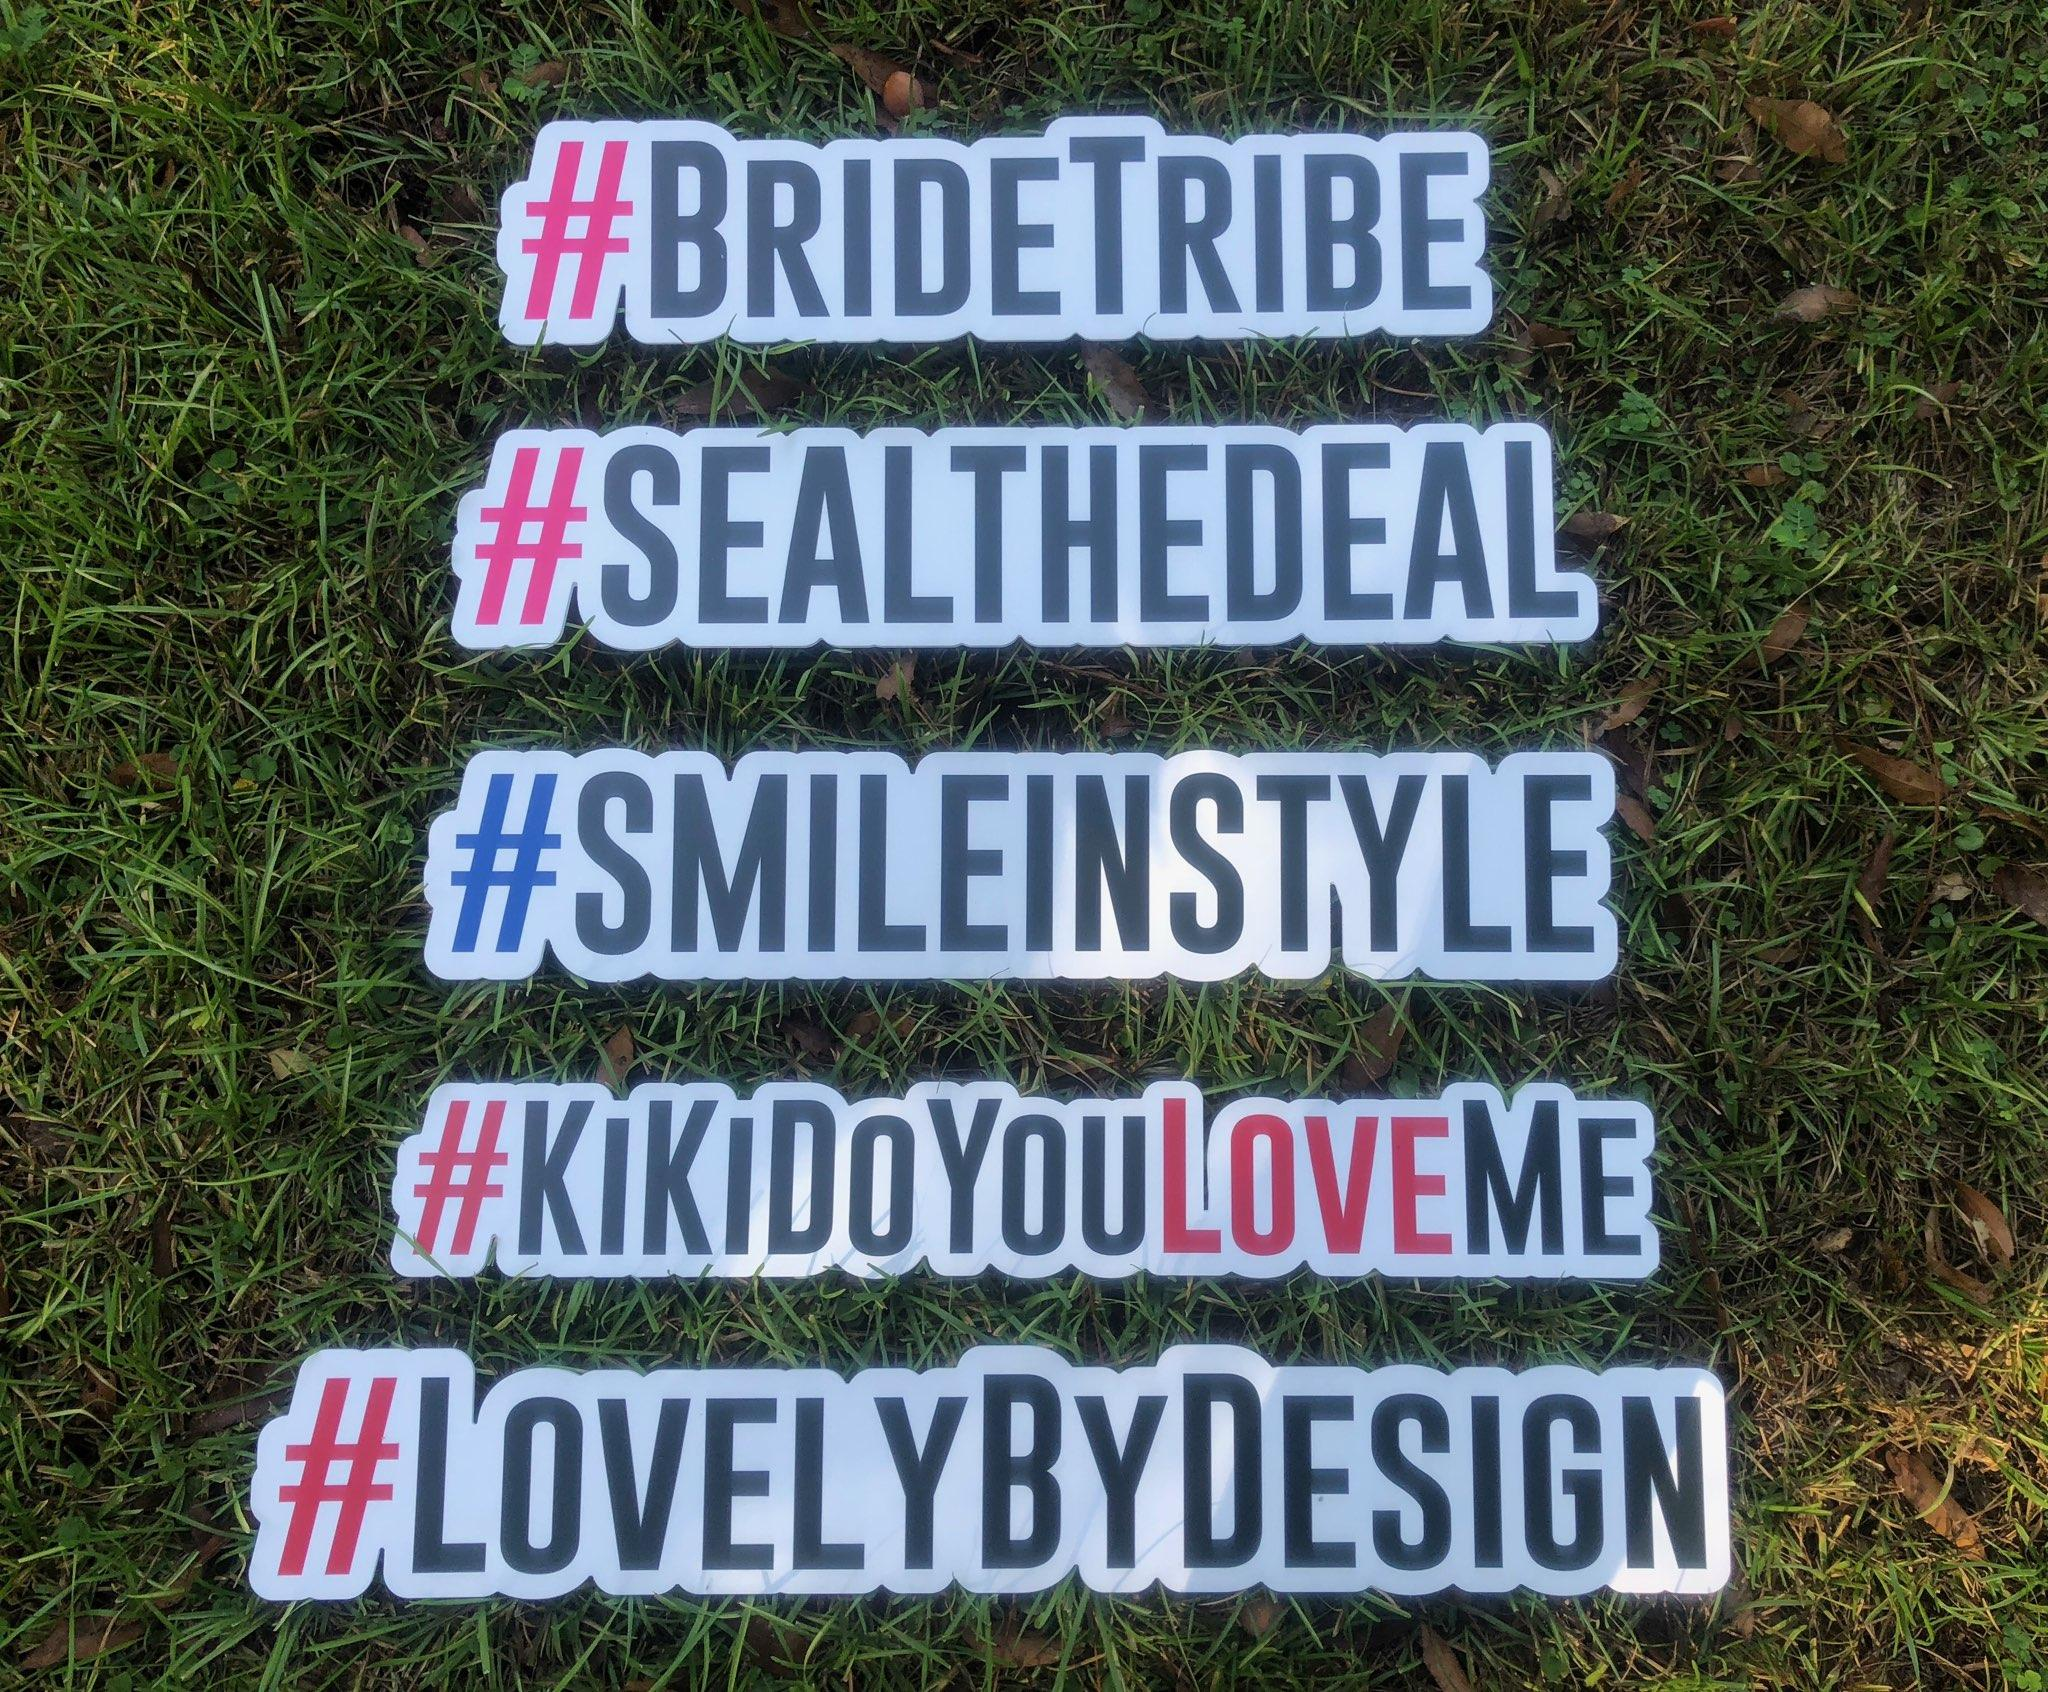 Custom #Hashtags $65 each - Have a wedding hashtag? Want to forever commemorate it? Add a custom sign that will make your photos stand out! This is also yours to keep after your event.